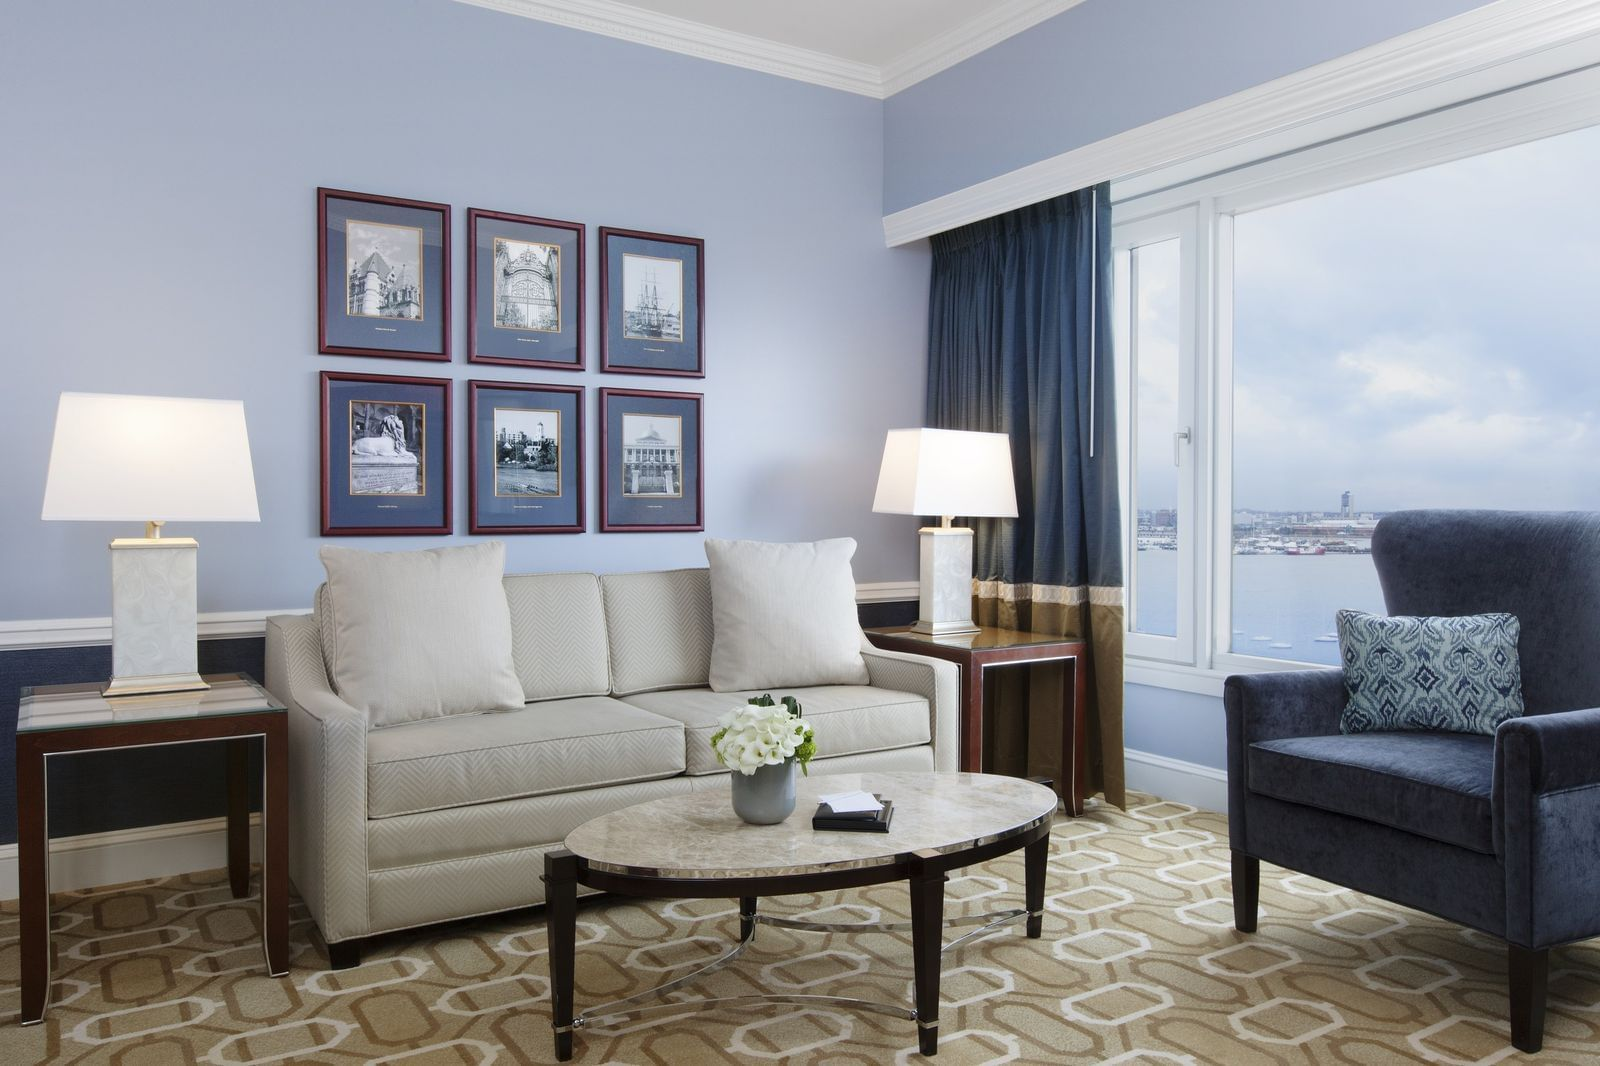 Hotel suite living room with Boston Harbor view